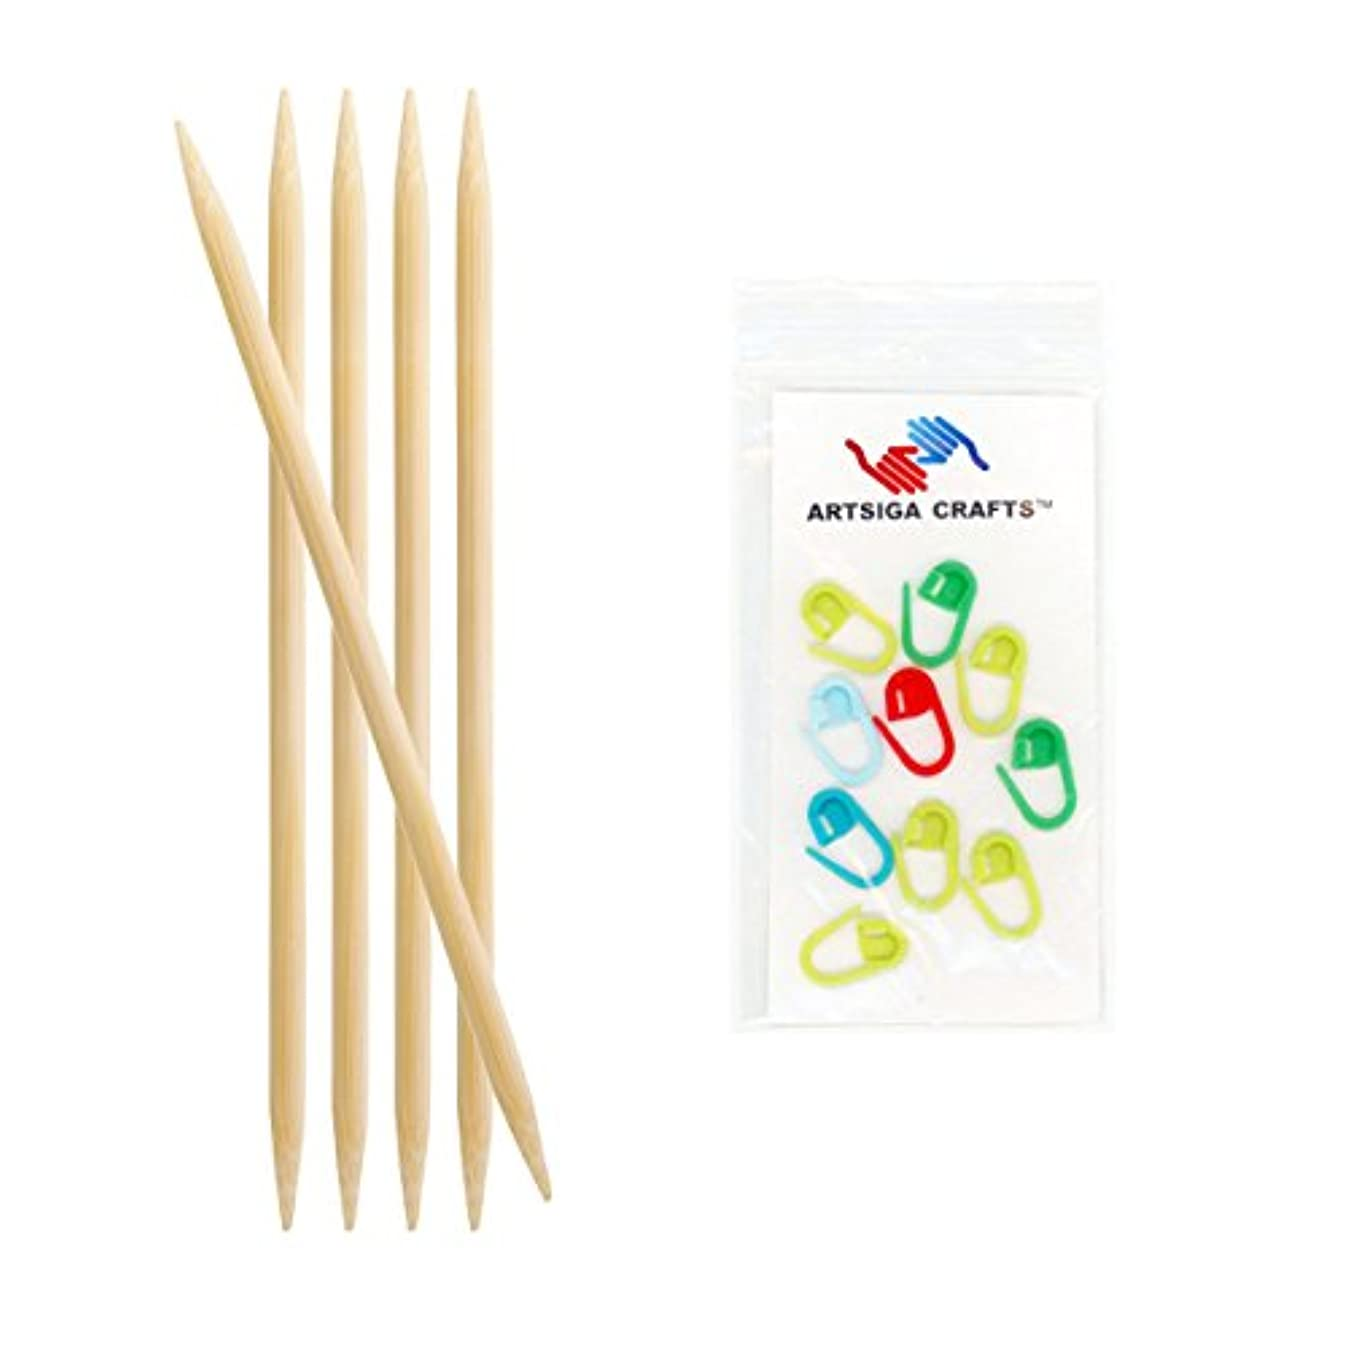 Knitter's Pride Bamboo Double Pointed 8-inch (20cm) Knitting Needles; Size US 10 (6.00mm) Bundle with 10 Artsiga Crafts Stitch Markers 900128